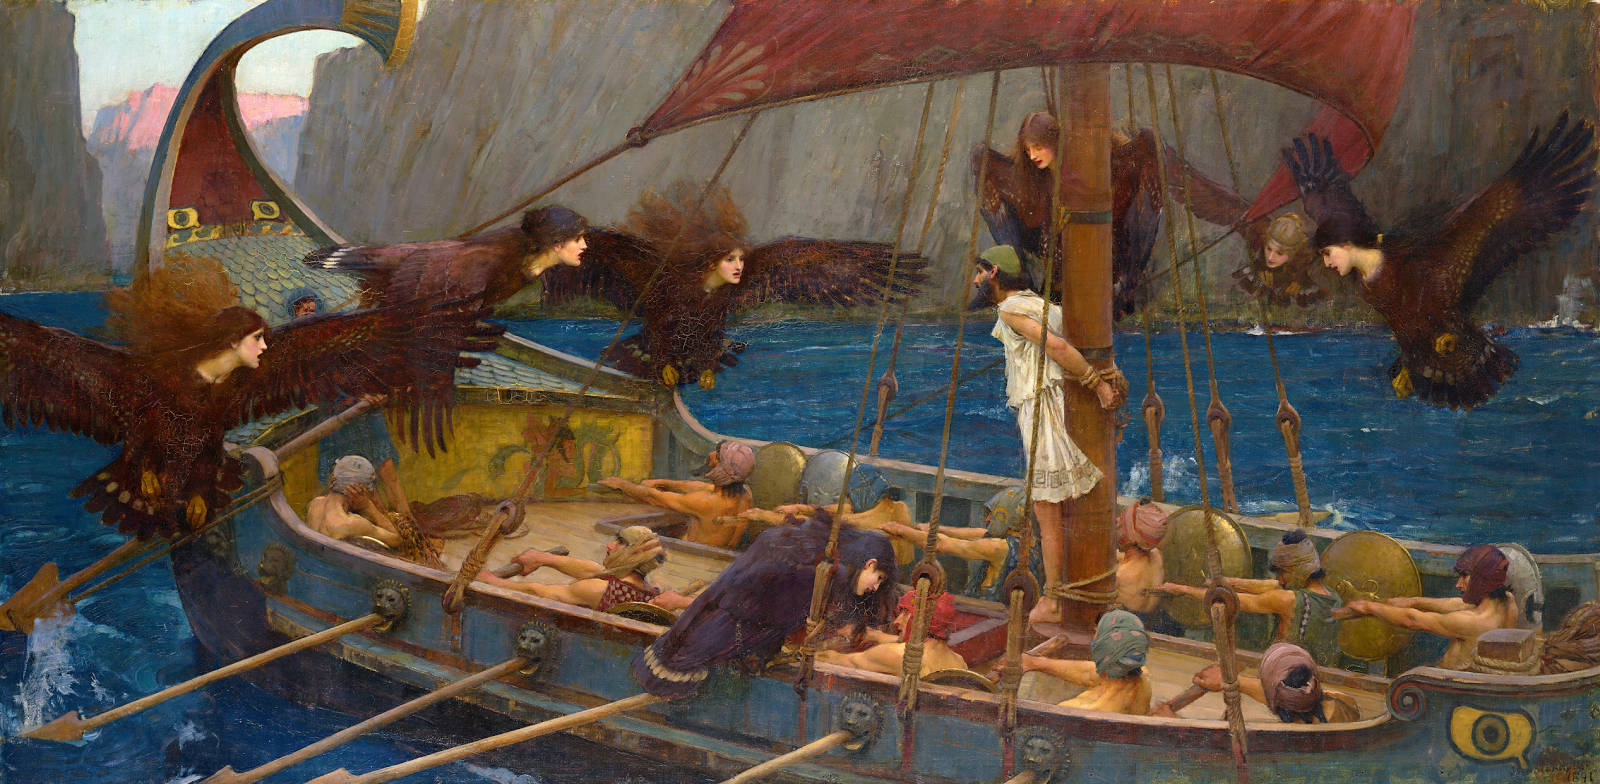 Ulisses e as Sereis, de John William Waterhouse